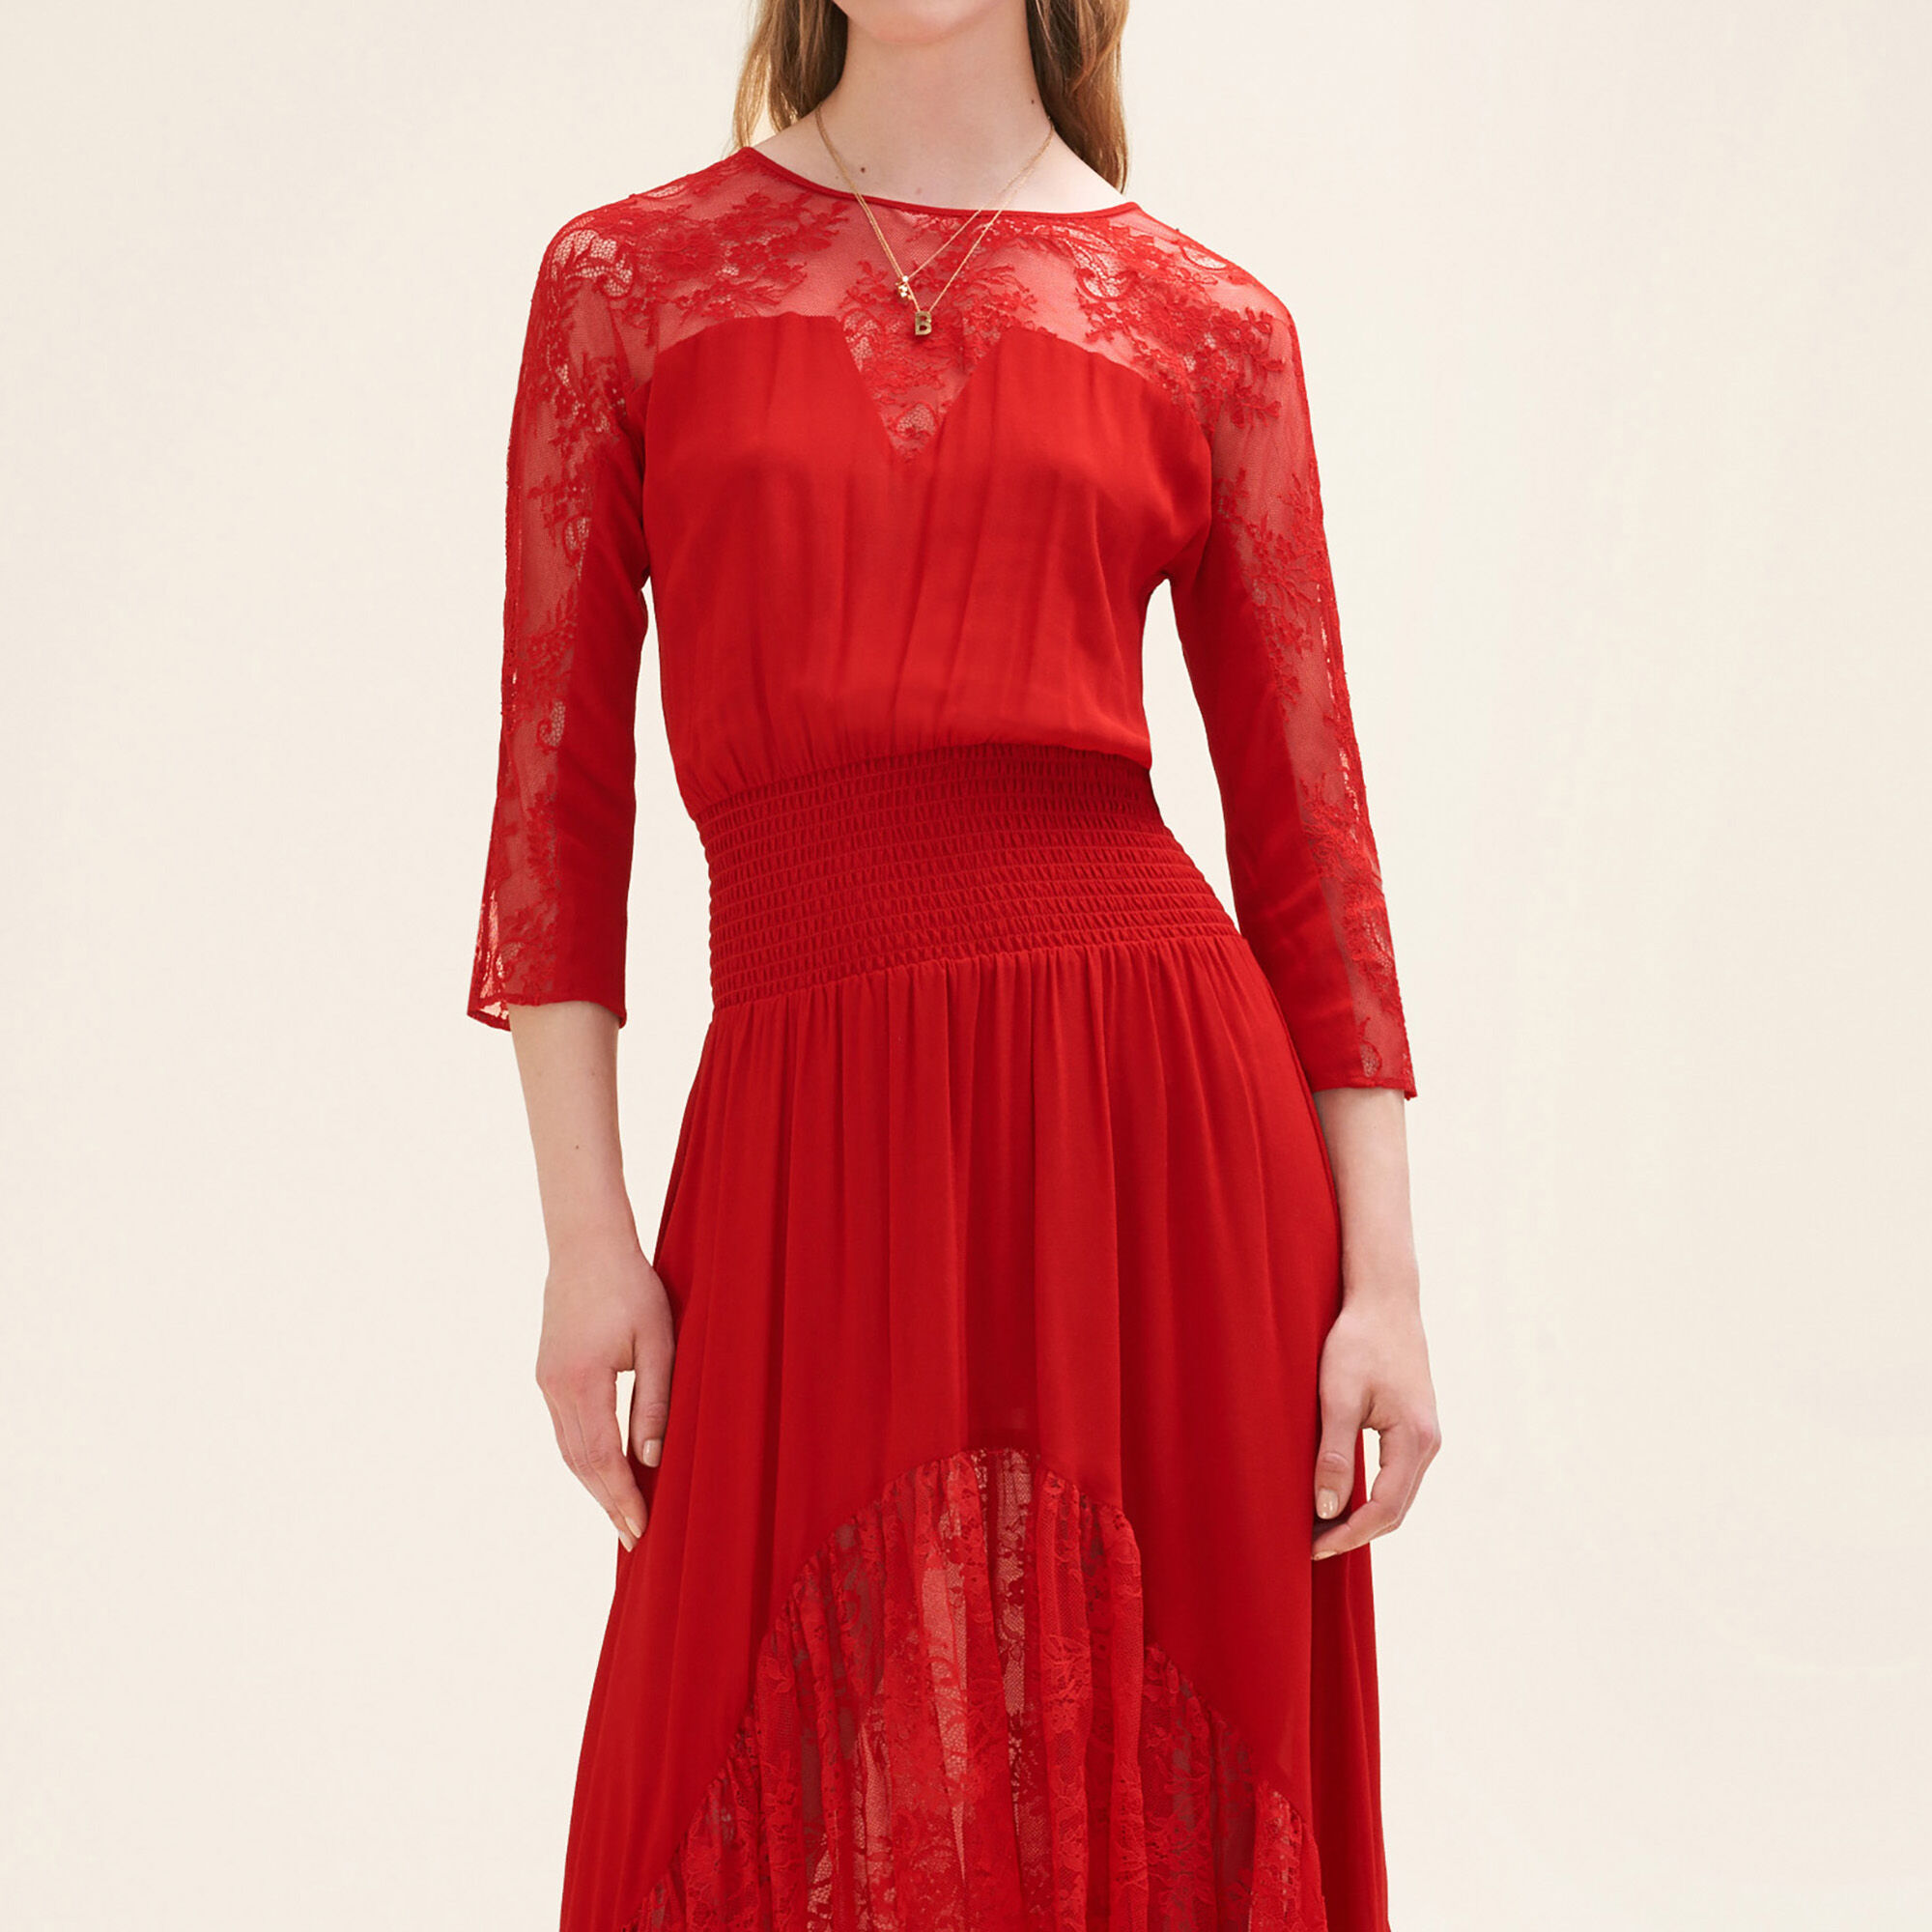 Red long dress with sleeves